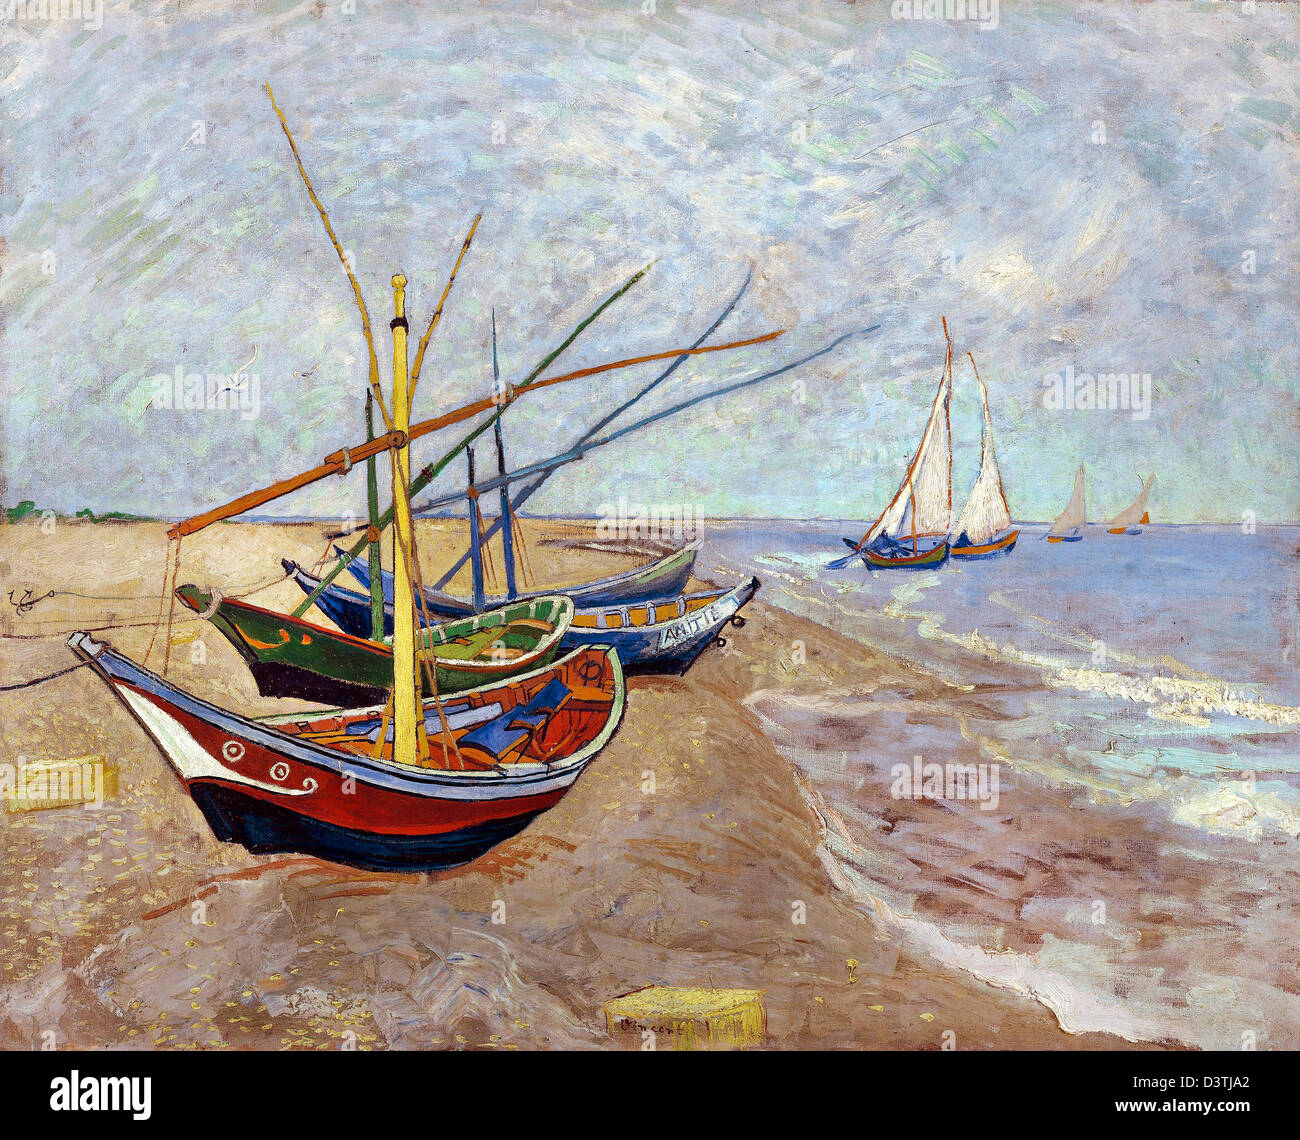 Vincent van Gogh, Fishing boats on the beach at Les Saintes-Maries-de-la-Mer 1888 Oil on canvas. Van Gogh Museum, - Stock Image